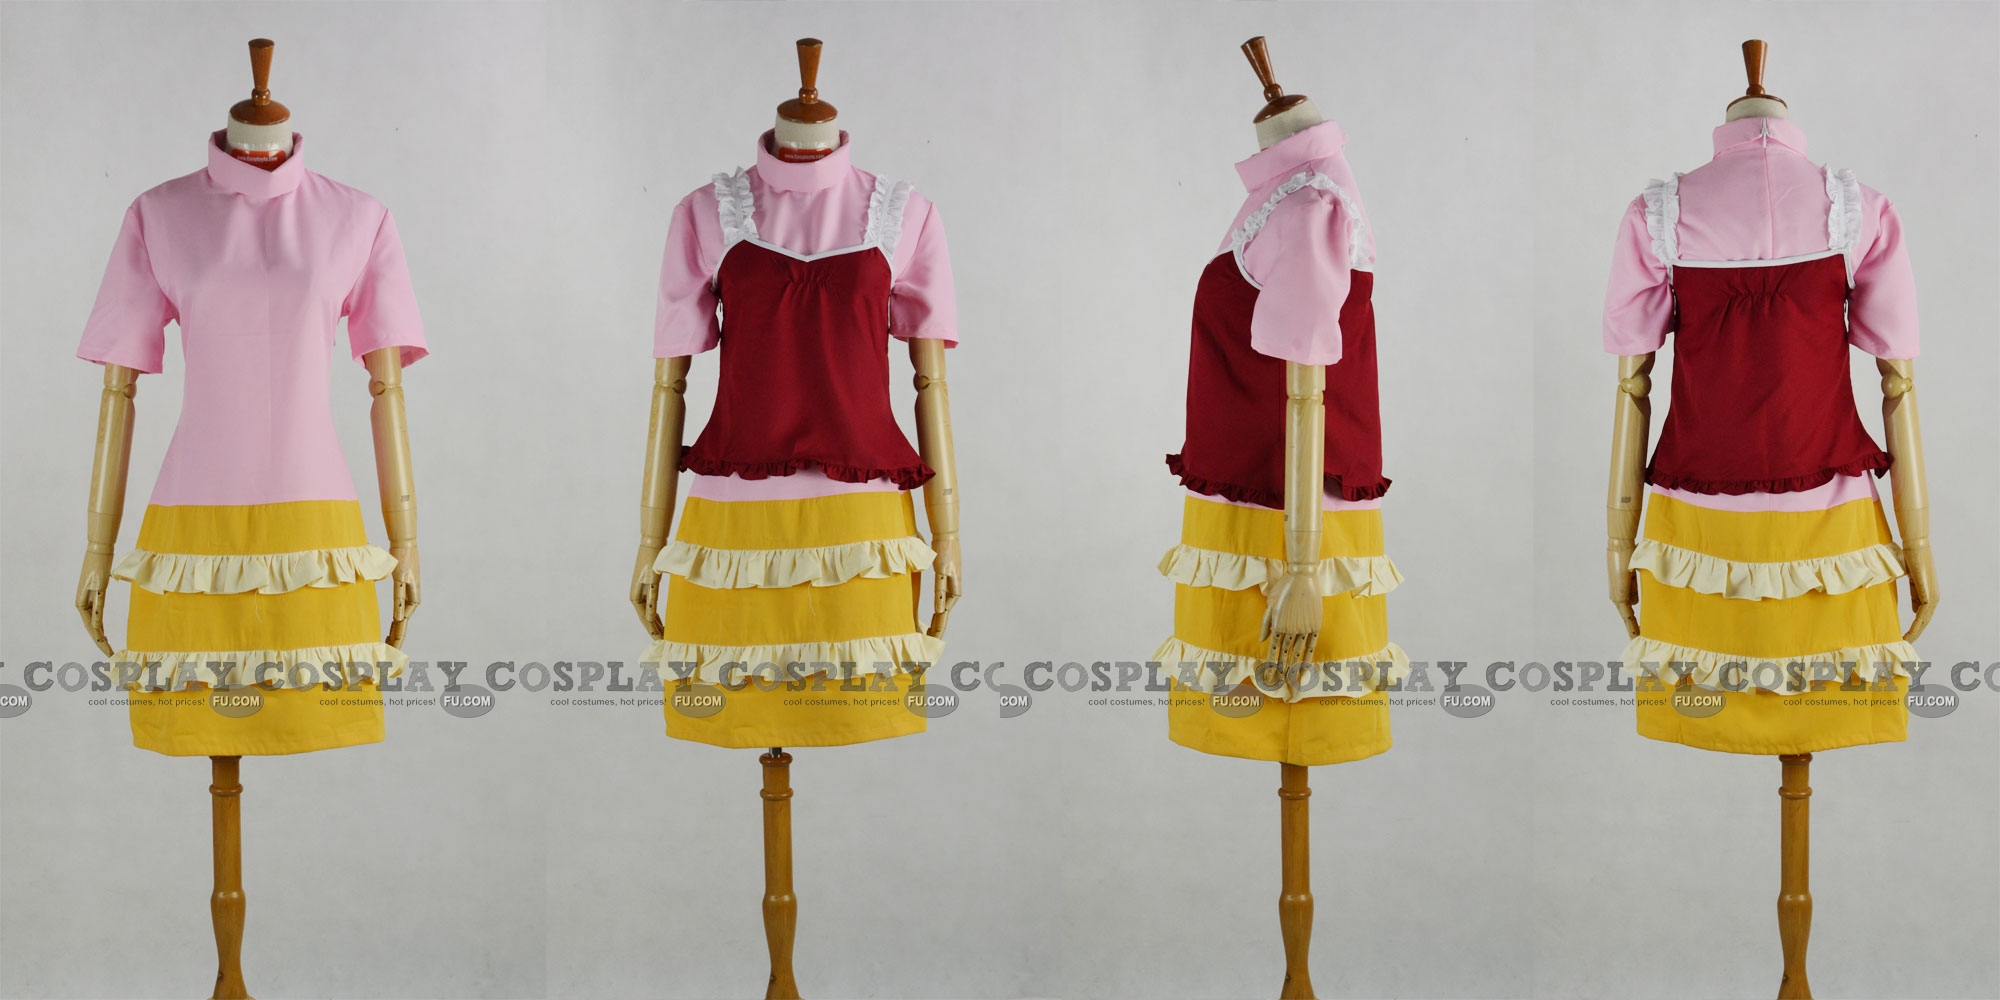 Lucy Cosplay Costume (2nd) from Elfen Lied